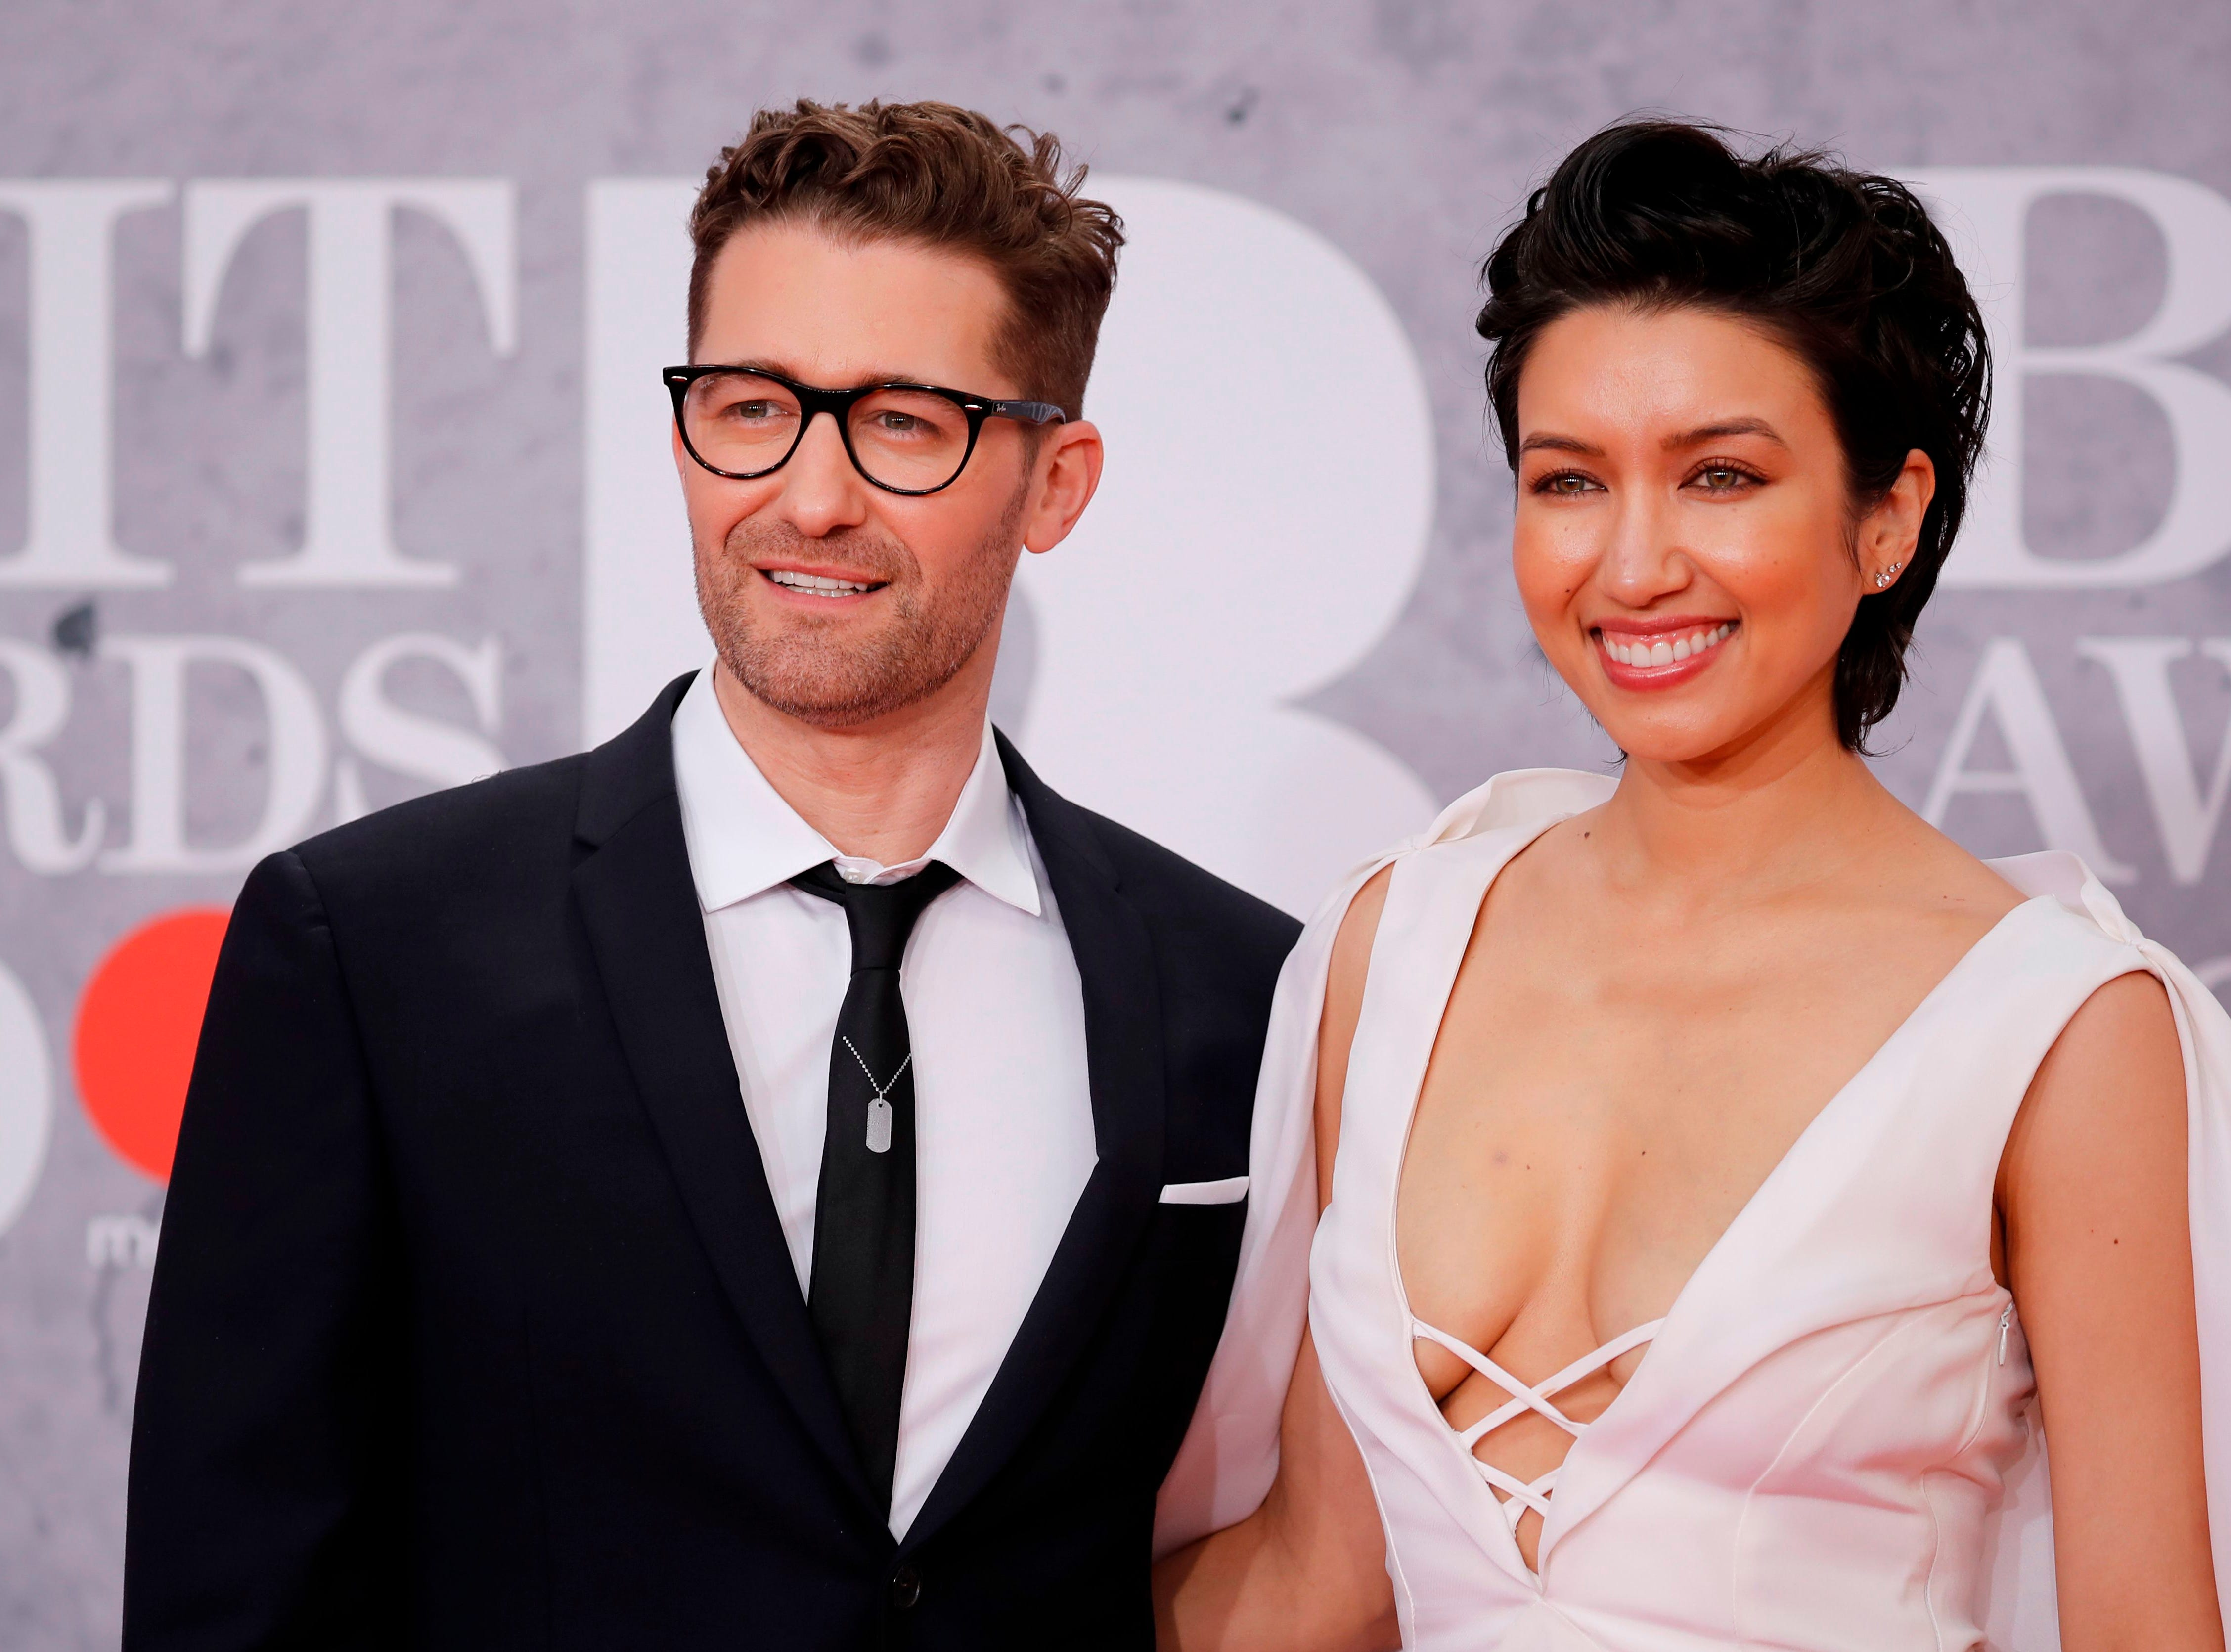 US actors Matthew Morrison (L) and his wife Renee Puente (R) pose on the red carpet on arrival for the BRIT Awards 2019 in London on February 20, 2019. (Photo by Tolga AKMEN / AFP) / RESTRICTED TO EDITORIAL USE  NO POSTERS  NO MERCHANDISE NO USE IN PUBLICATIONS DEVOTED TO ARTISTSTOLGA AKMEN/AFP/Getty Images ORG XMIT: 723 ORIG FILE ID: AFP_1DO0JC